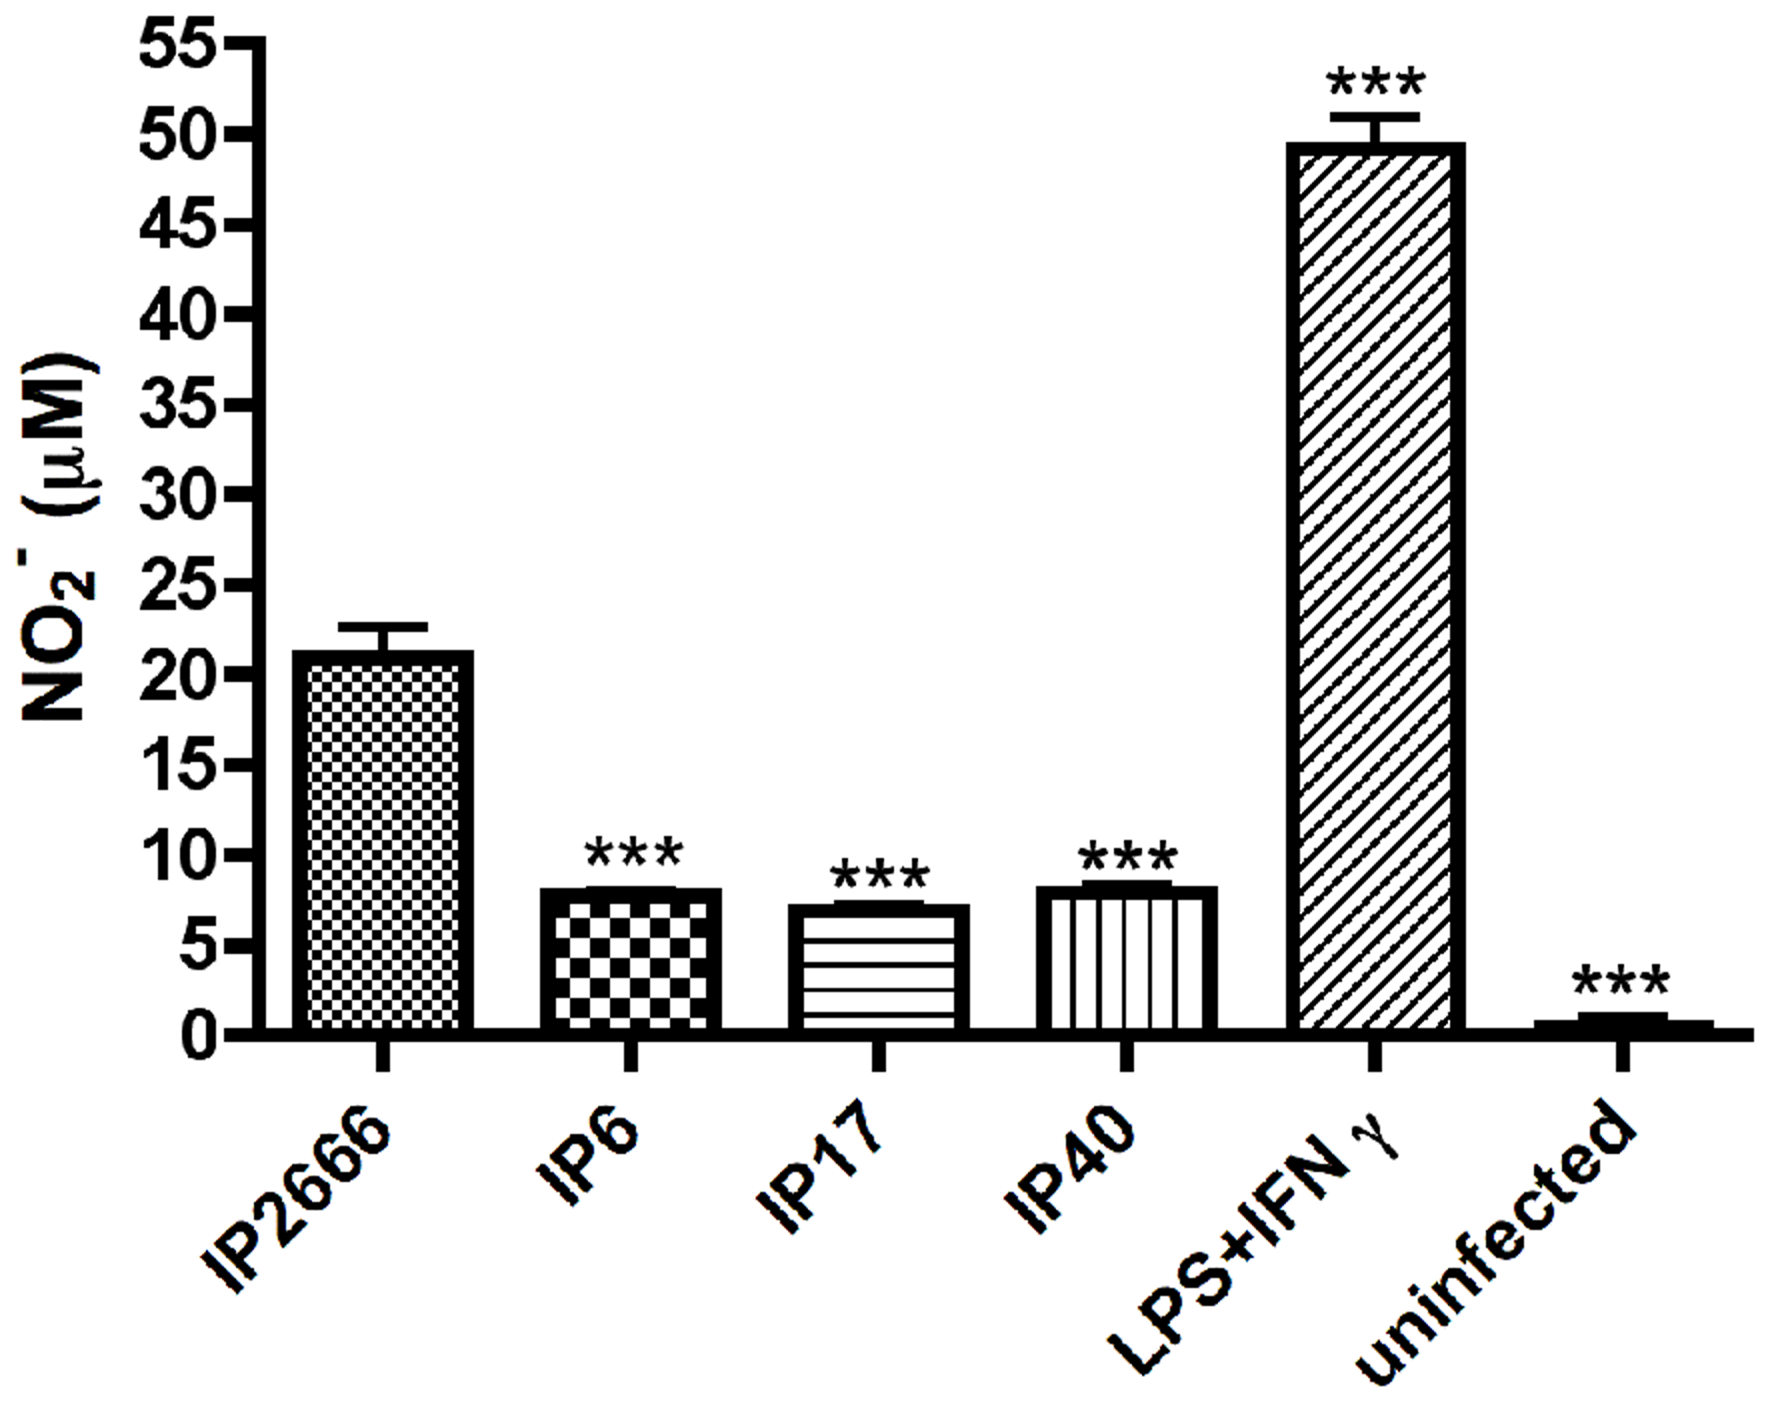 Measurement of NO production by macrophages infected with different <i>Y. pseudotuberculosis</i> strains.